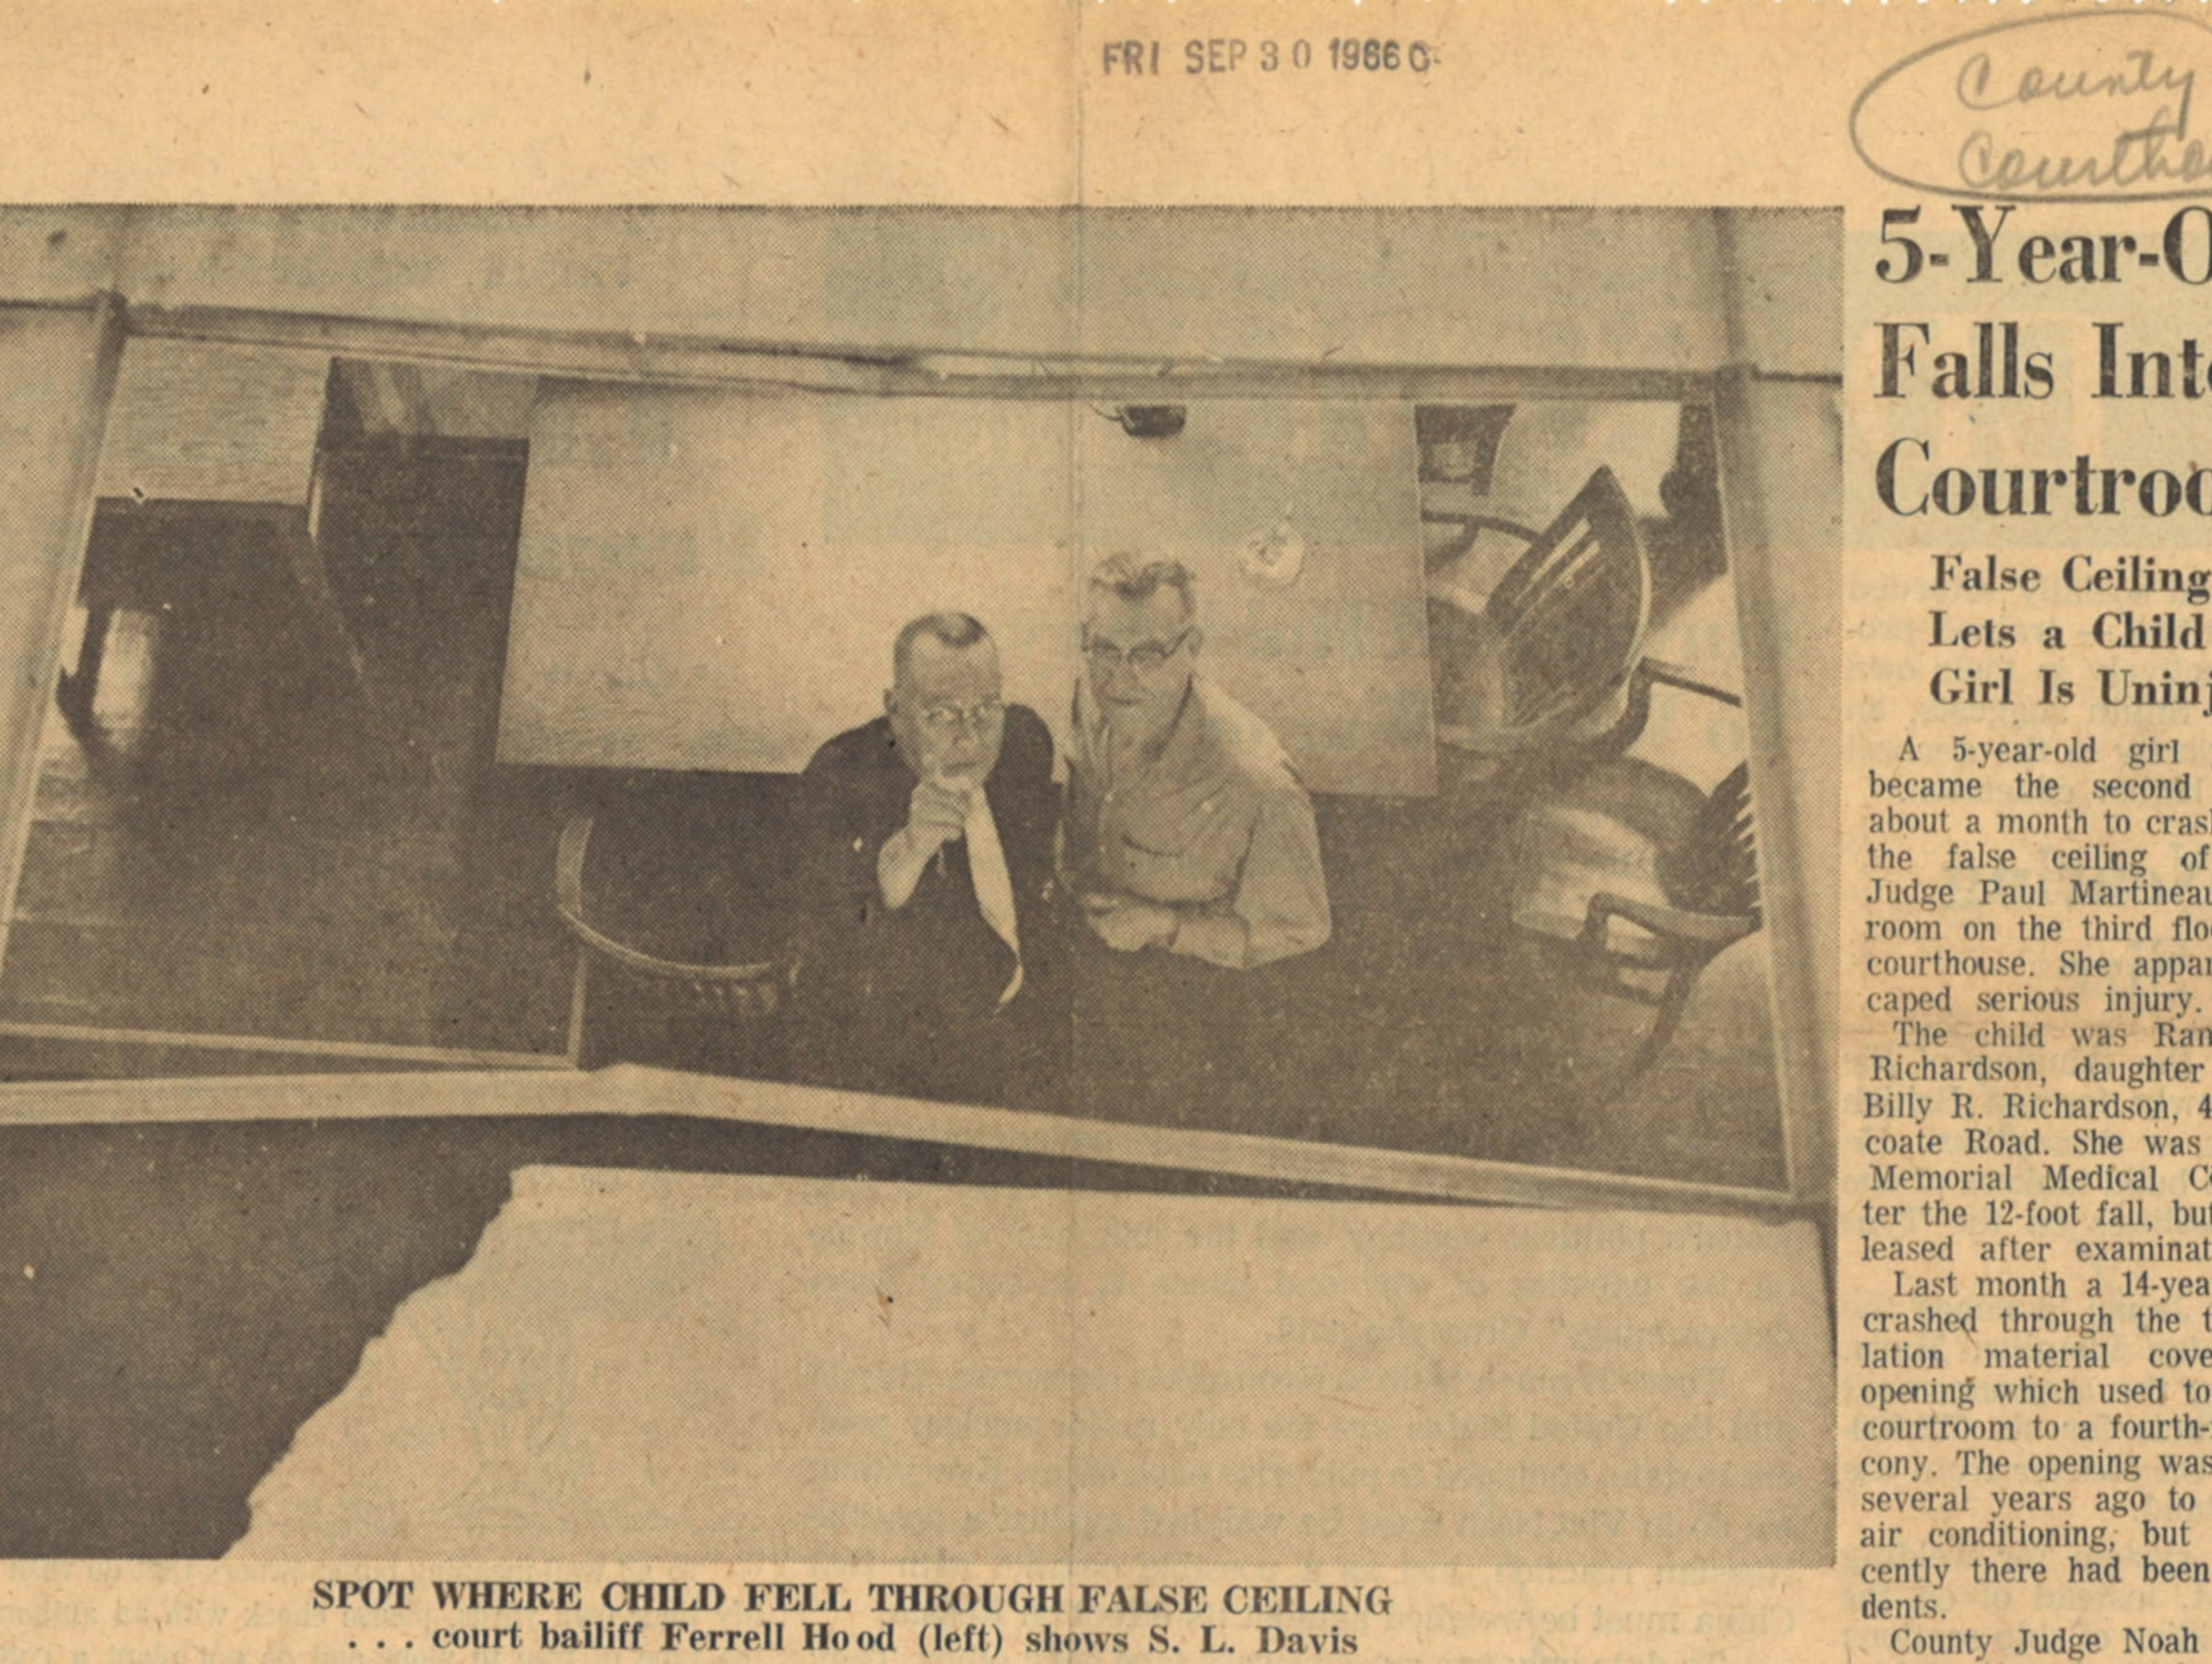 An article from Sept. 30, 1966 Caller-Times detailing